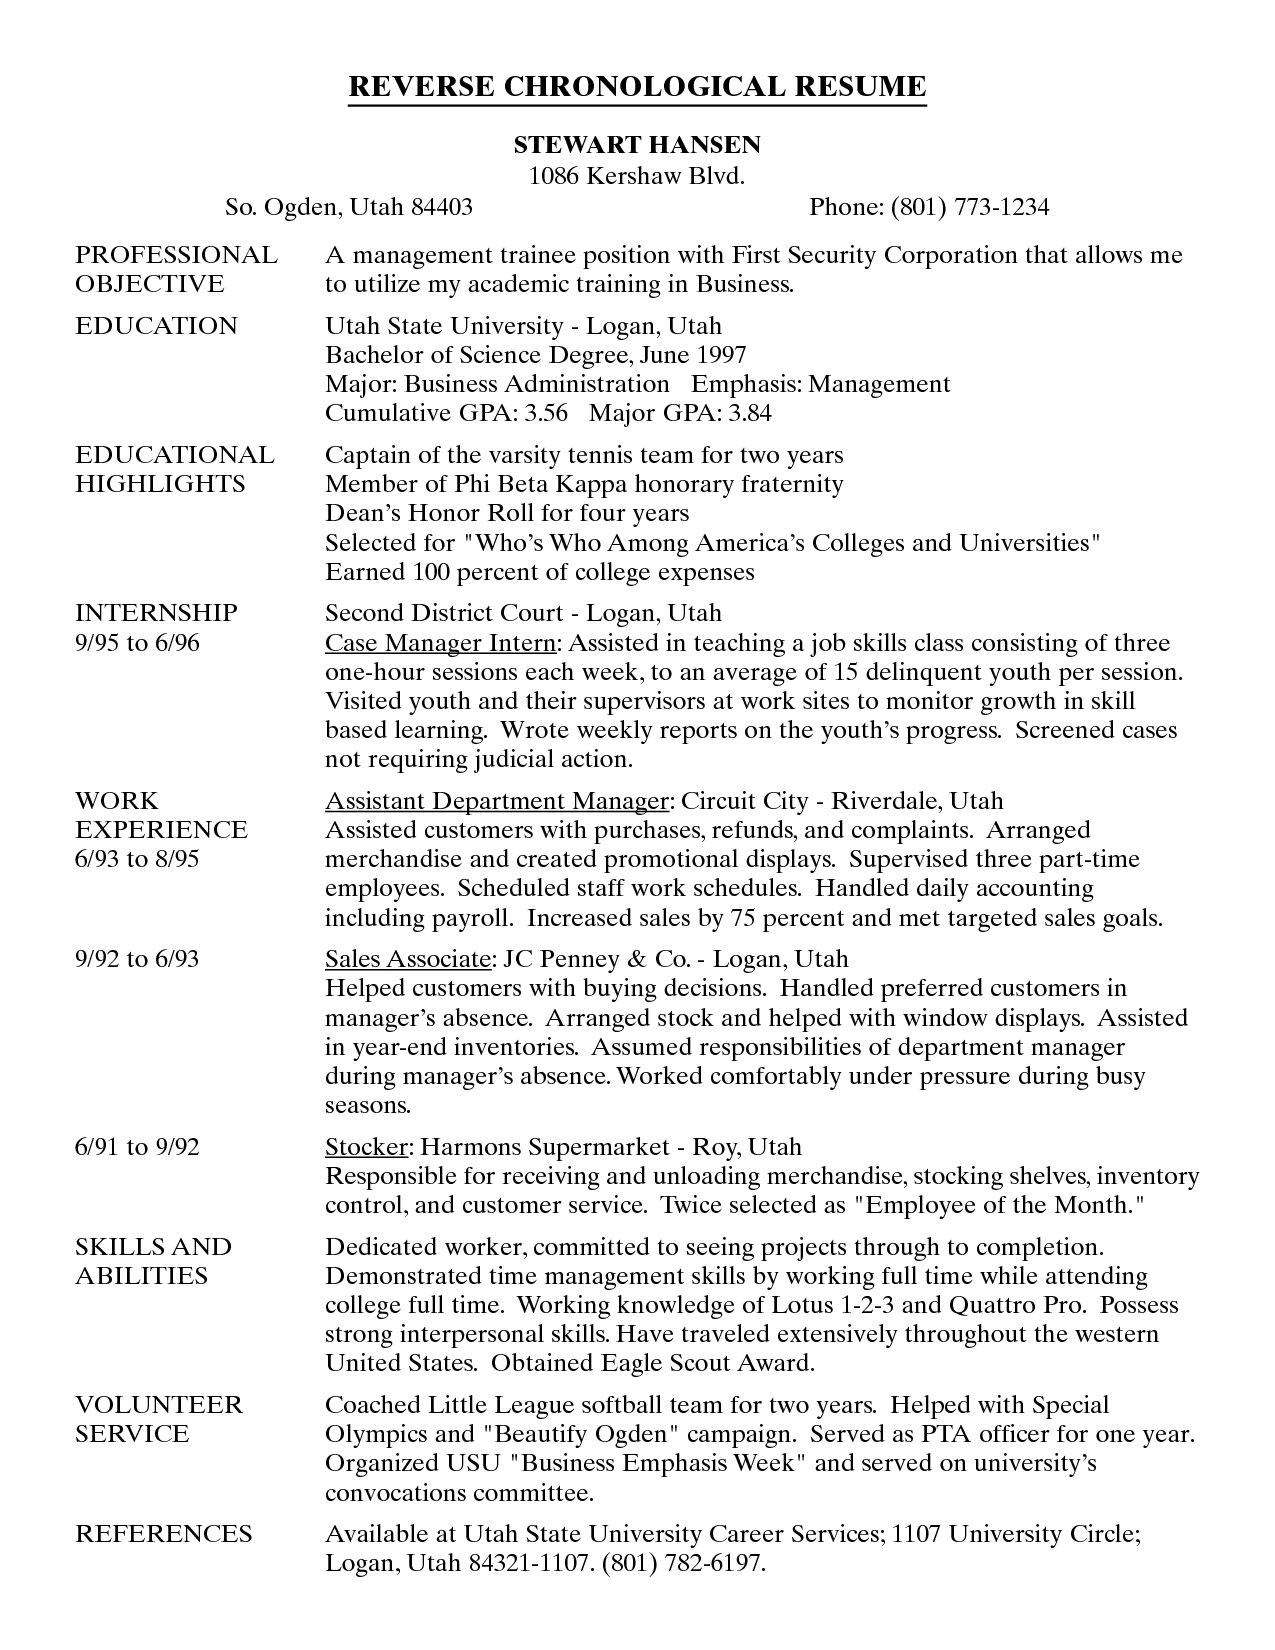 chronological order resume example dc0364f86 the reverse